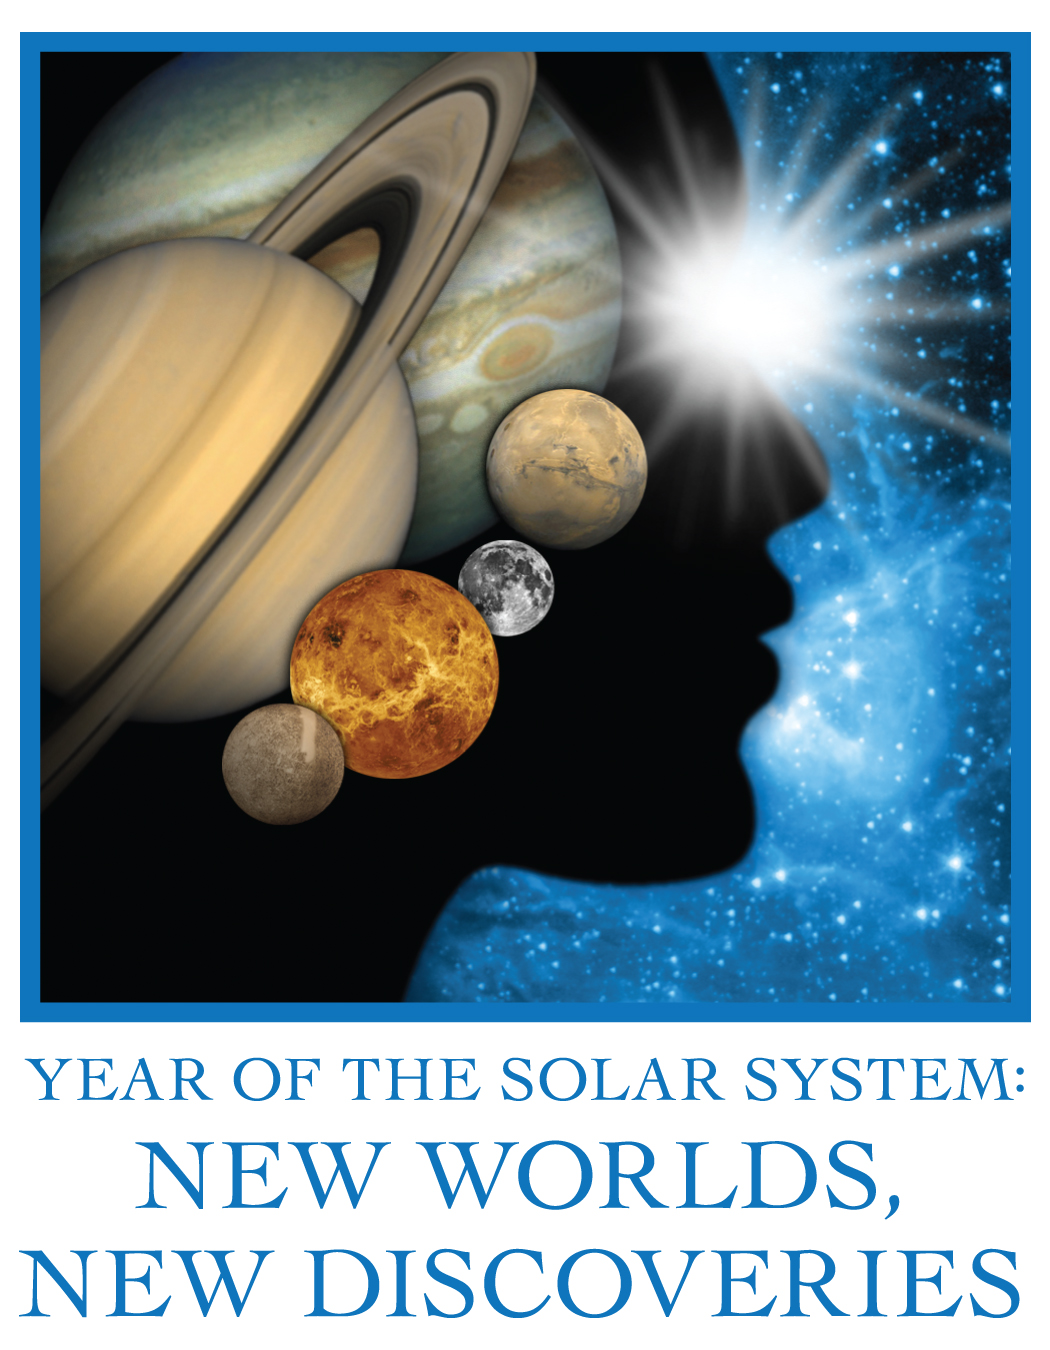 Year of the Solar System Logo